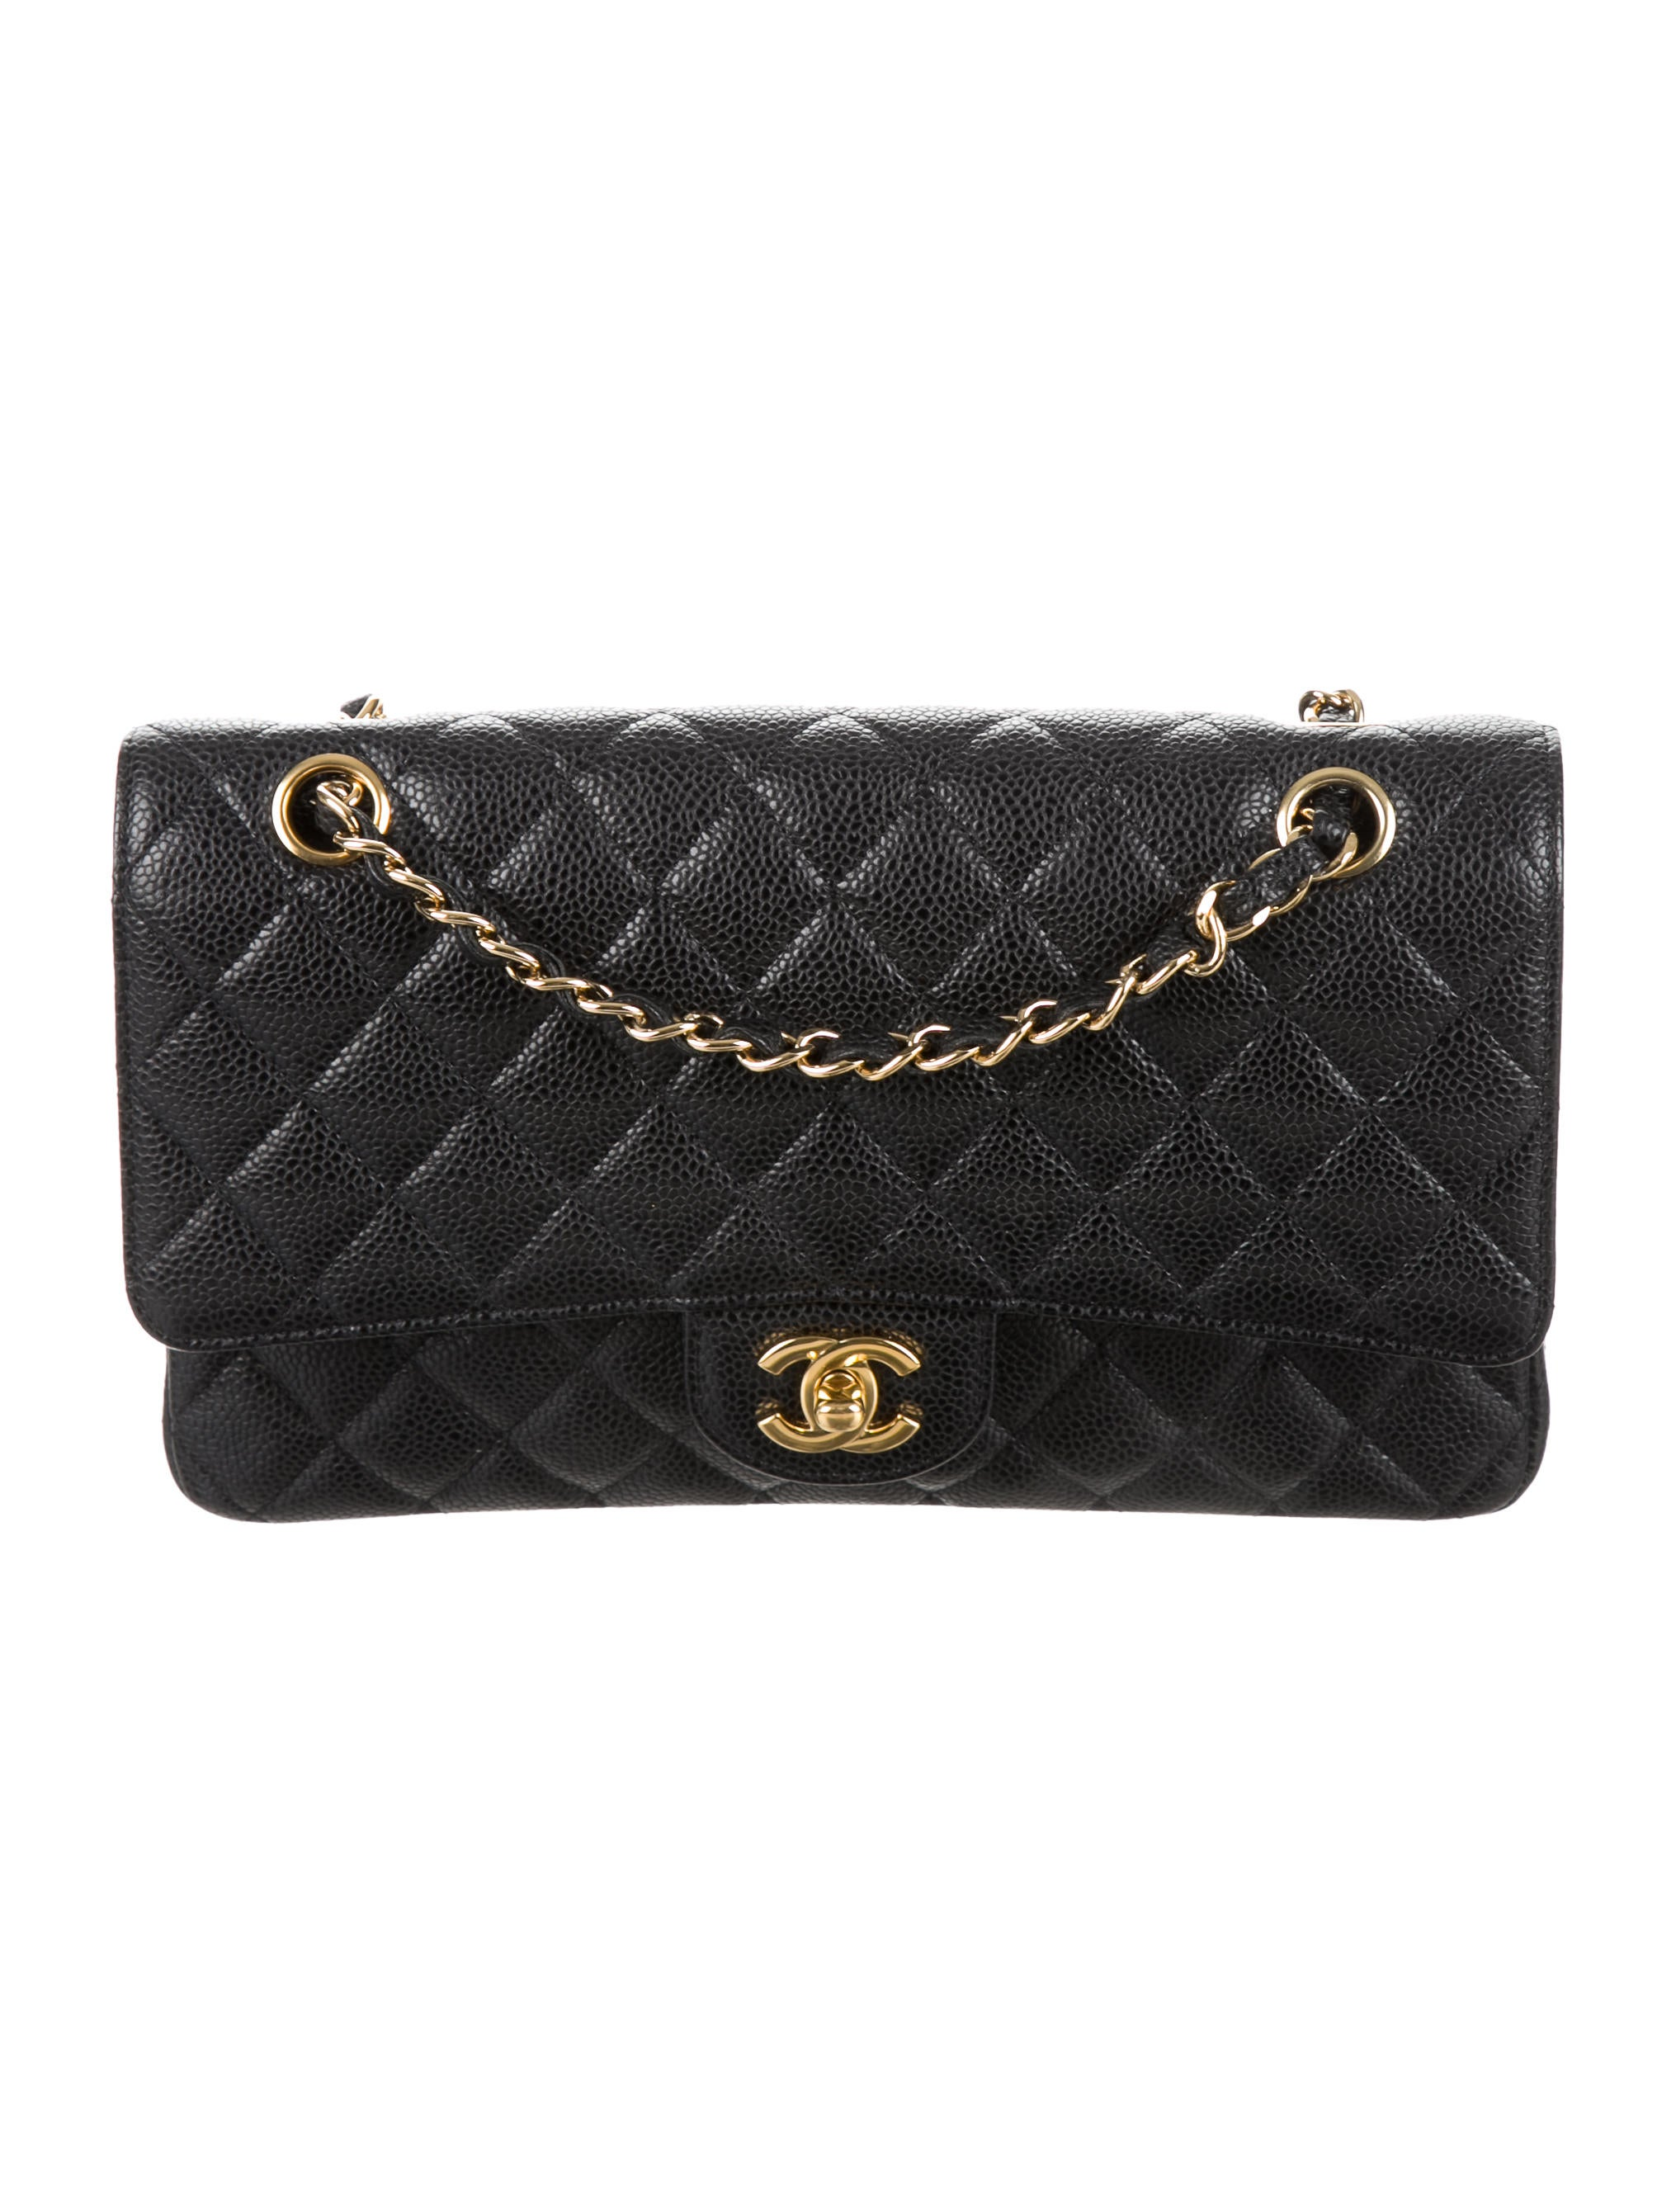 chanel classic medium flap bag handbags